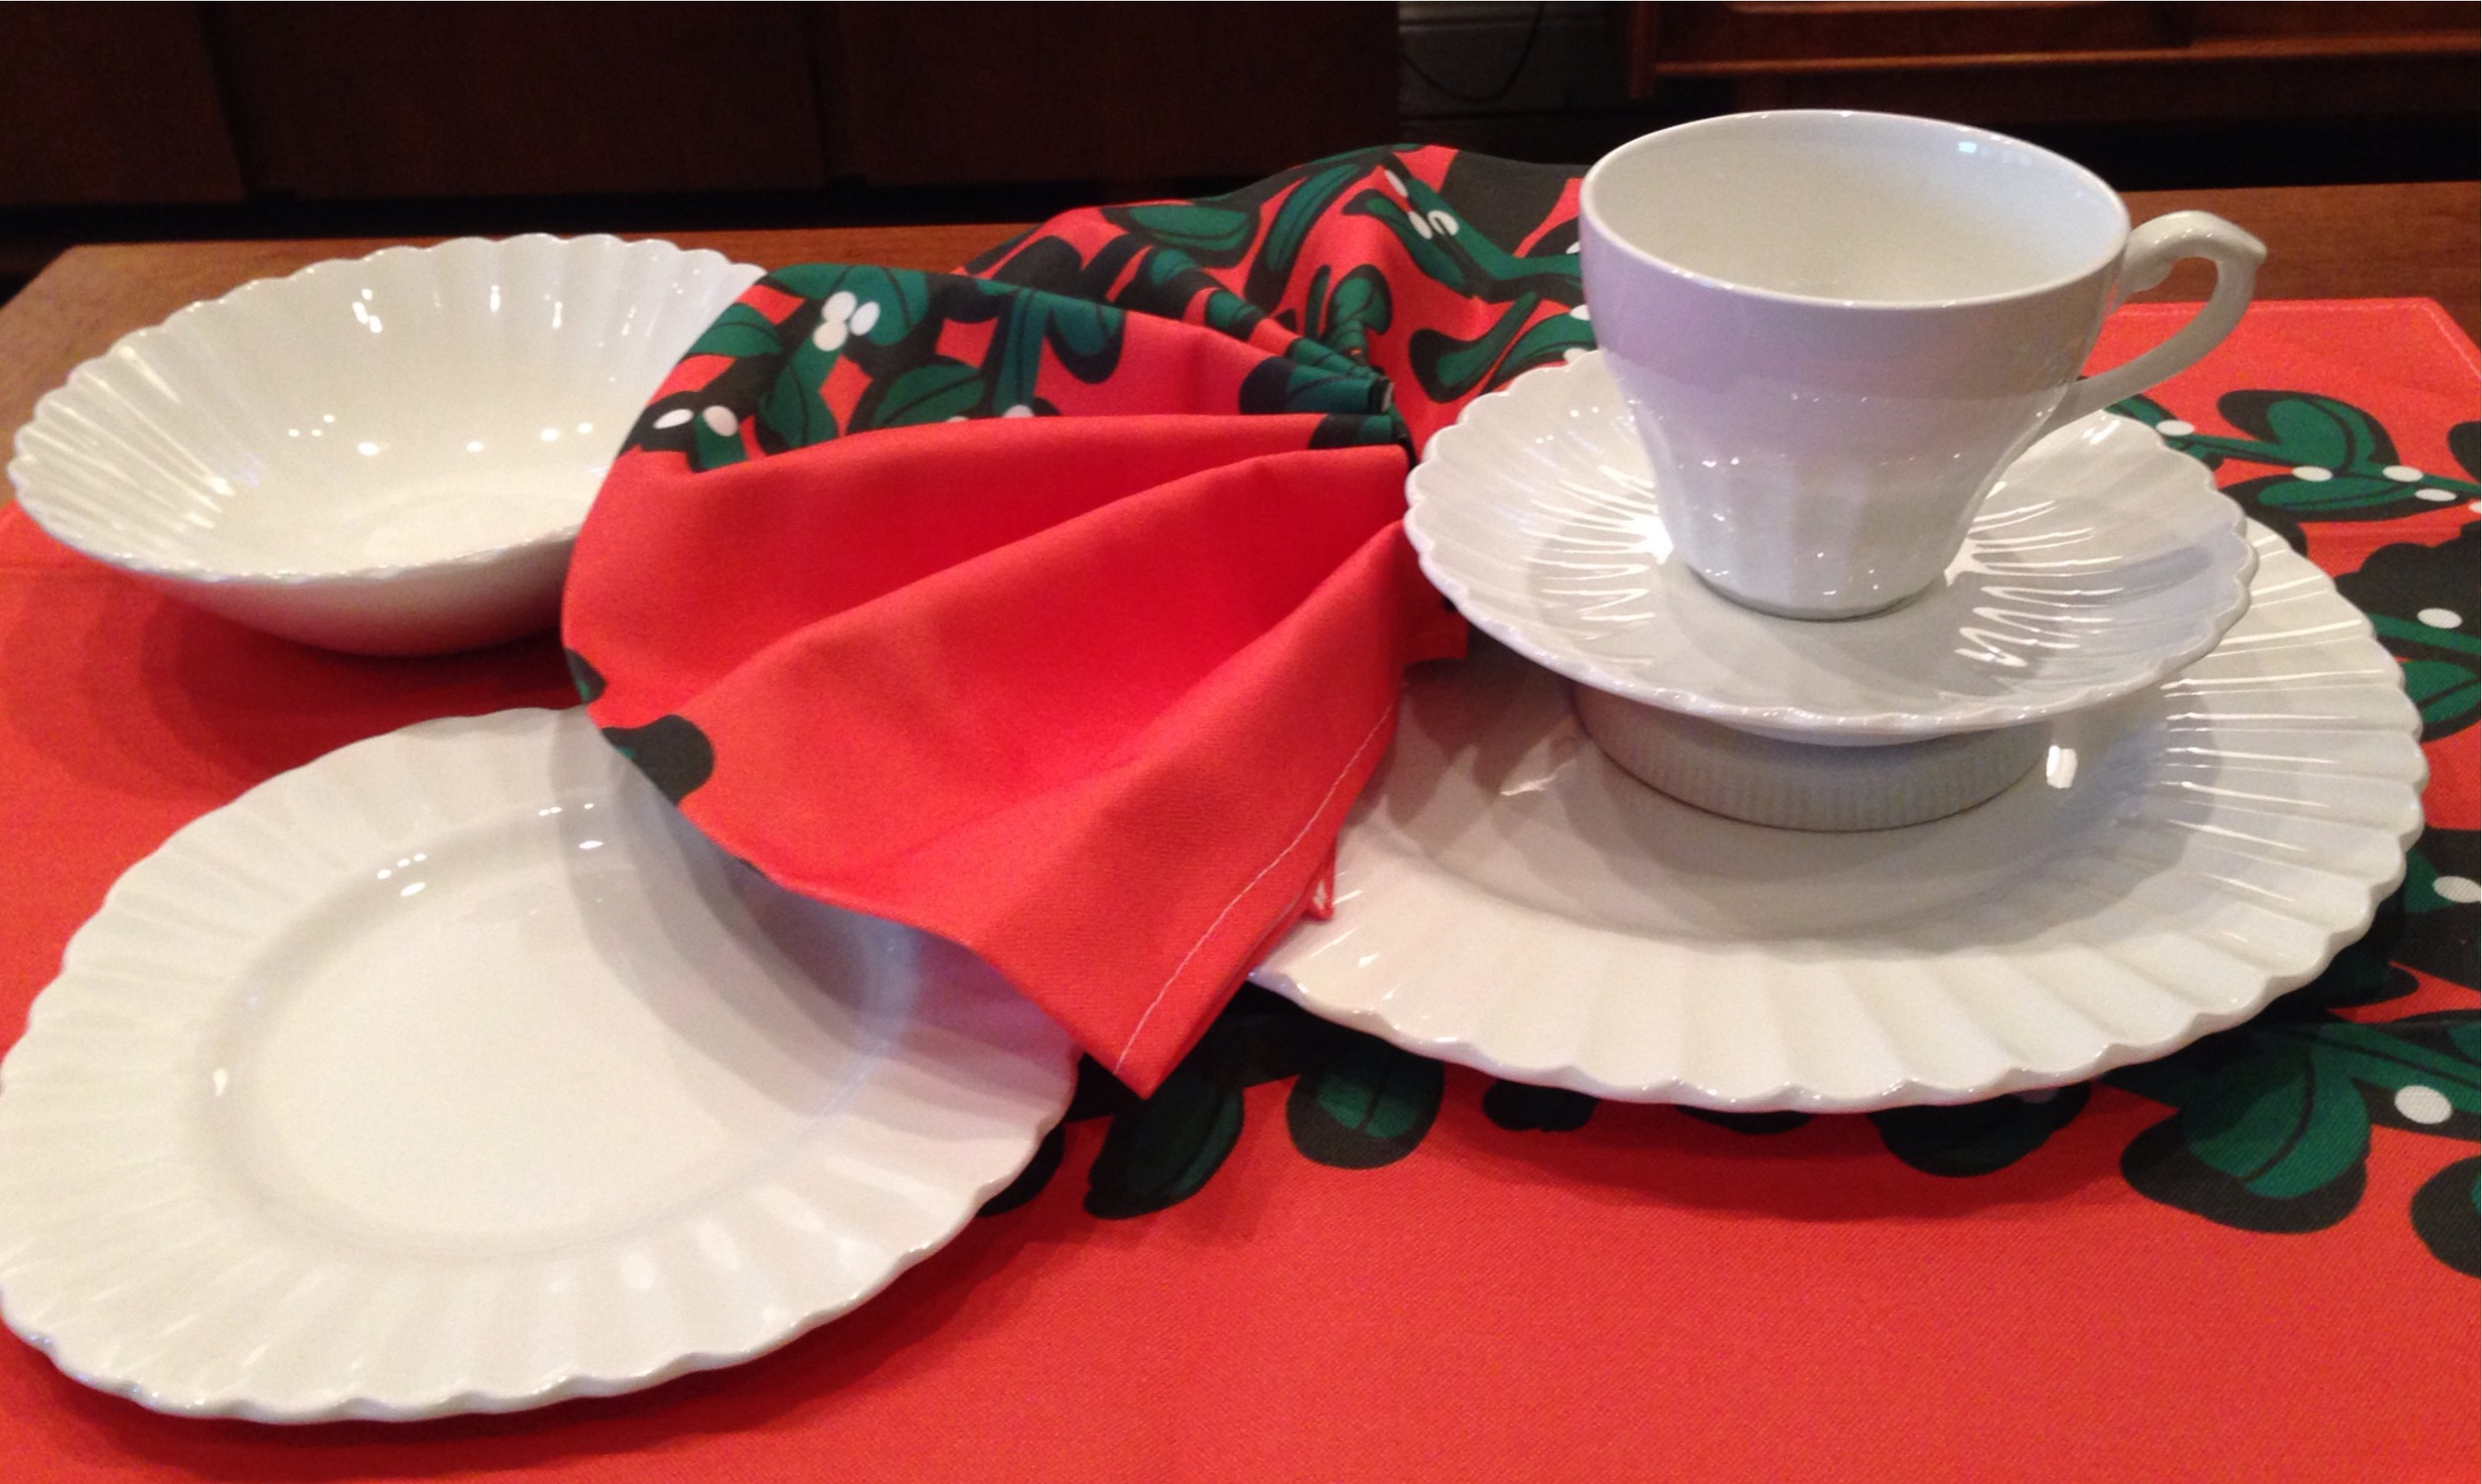 J&G Meakin china in white | service for 12 | $240